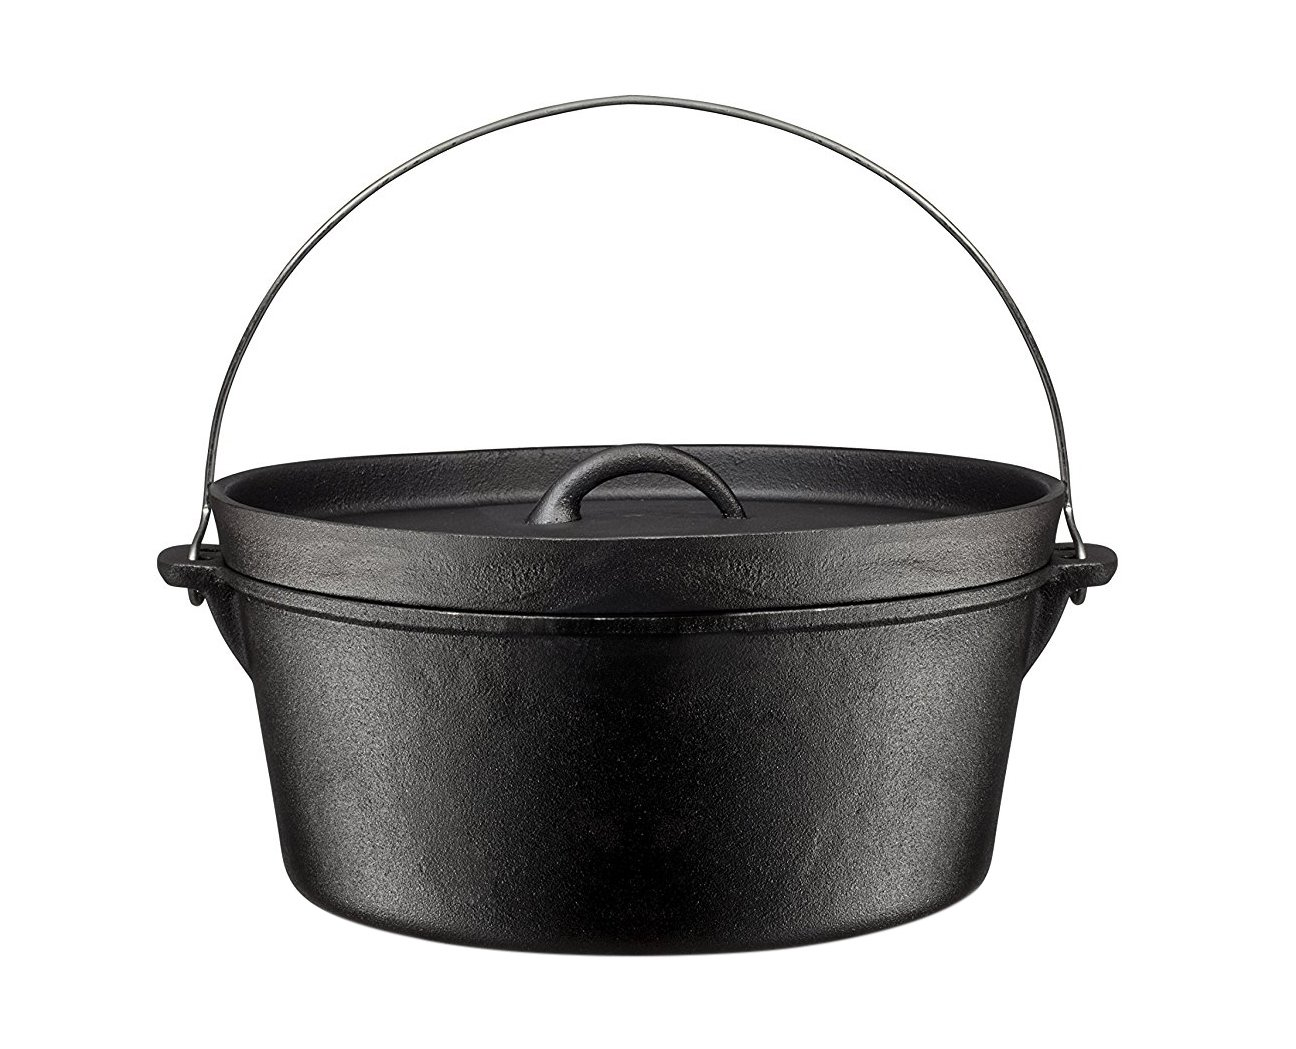 Bruntmor Pre-Seasoned Cast Iron Dutch Oven with Flanged Lid Iron Cover, for Campfire or Fireplace Cooking, Flat Bottom 8 Quart